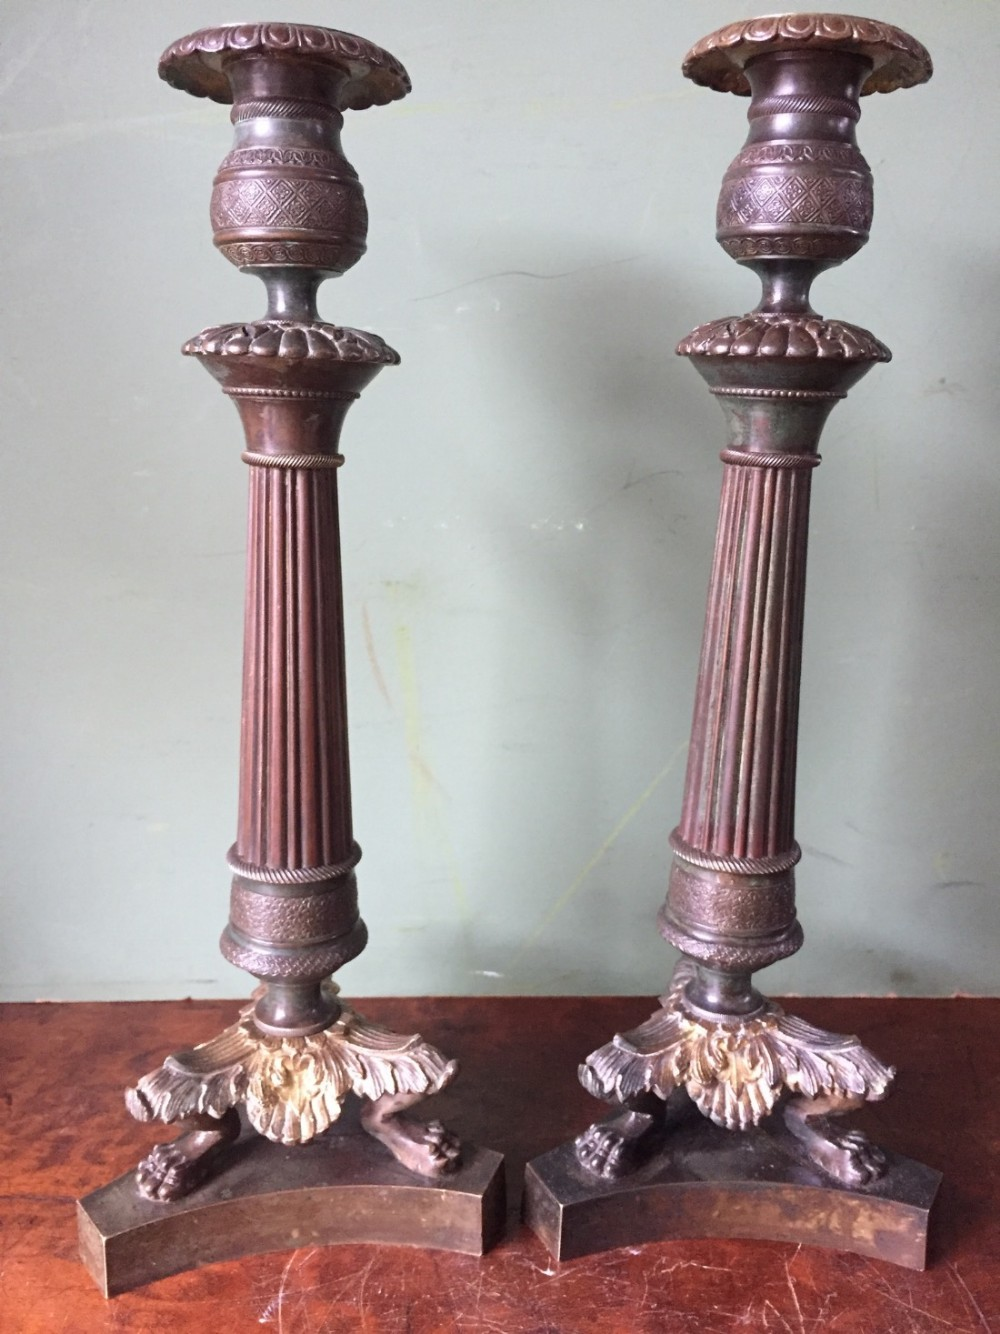 pair of early c19th french charles x period bronze empire design candlesticks